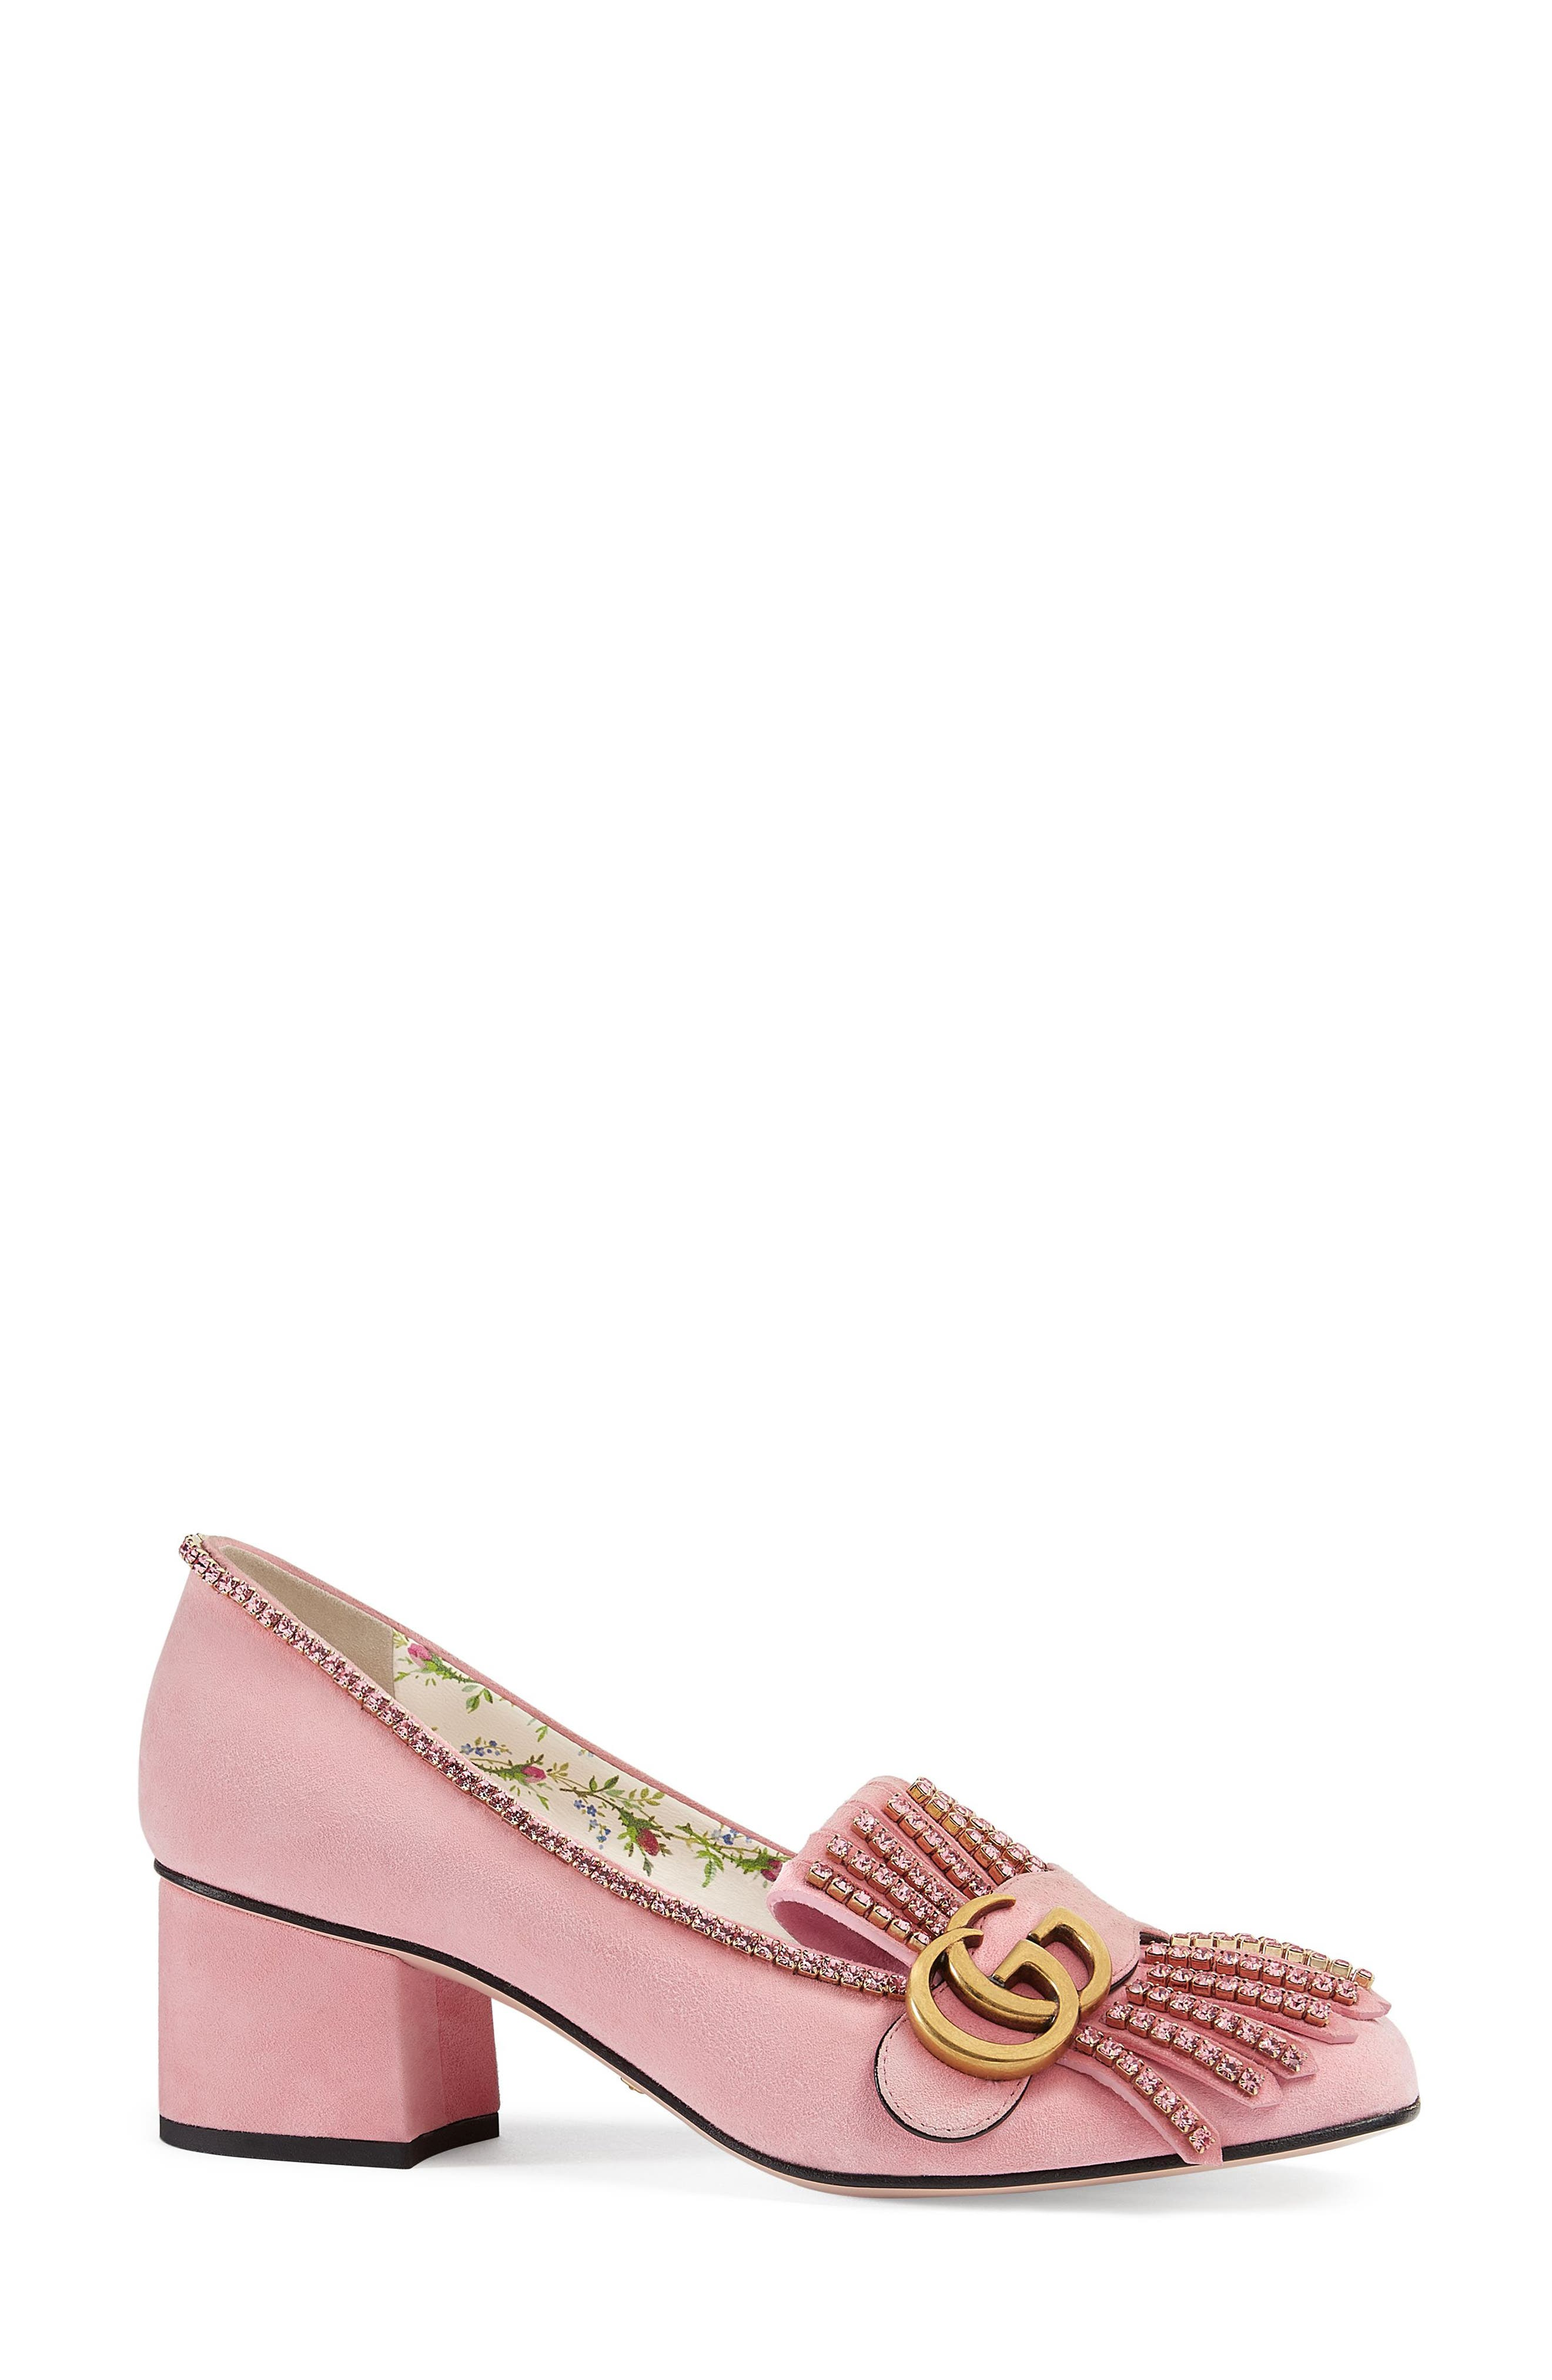 GG Marmont Crystal Embellished Pump,                             Main thumbnail 1, color,                             Light Rose